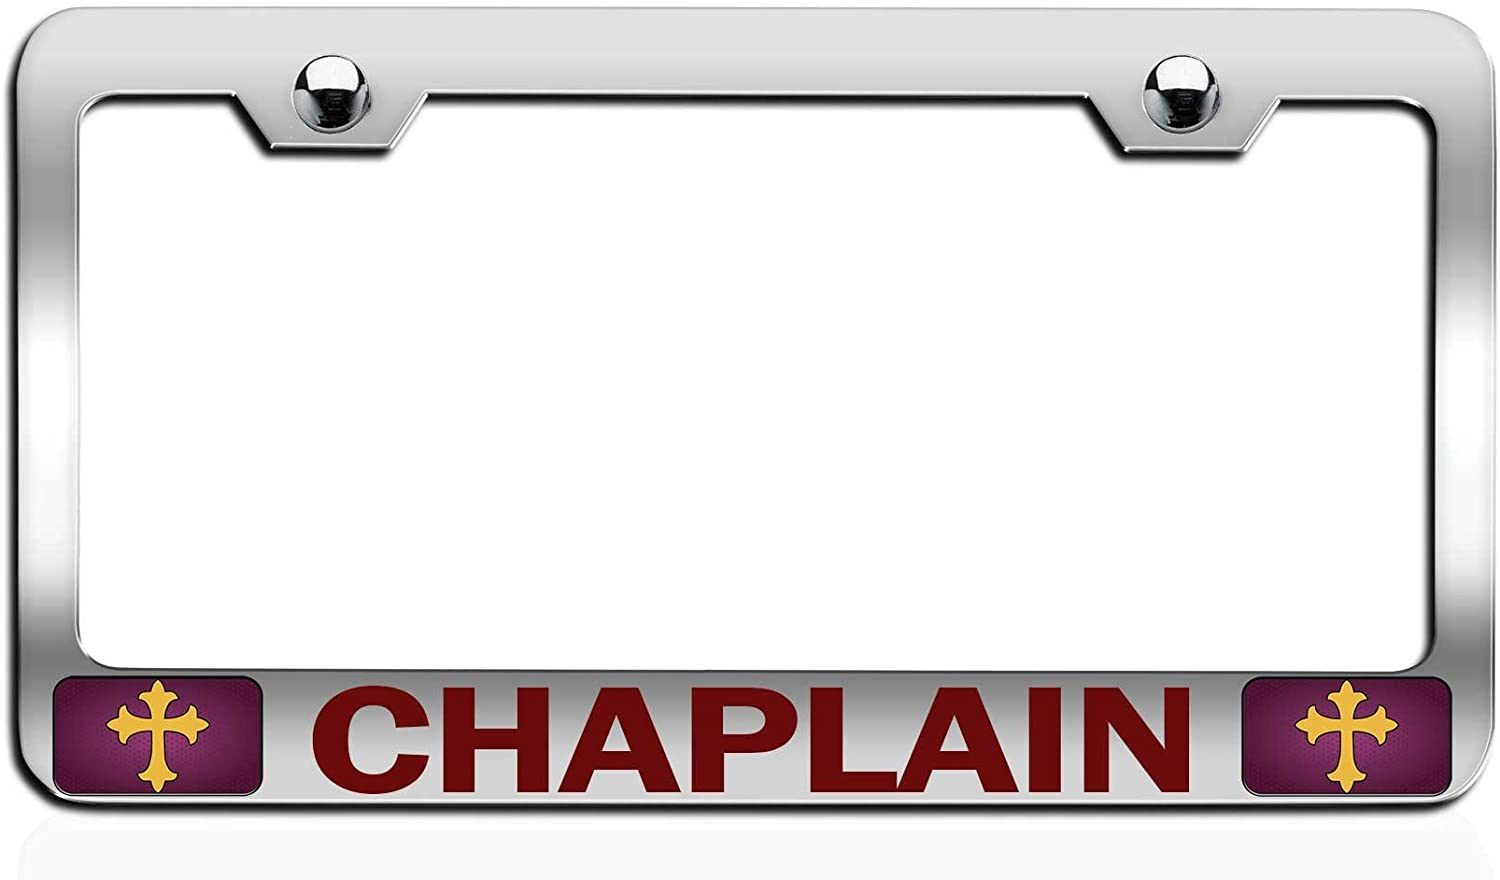 Ordained Chaplain License Plate Frame Tag Holder